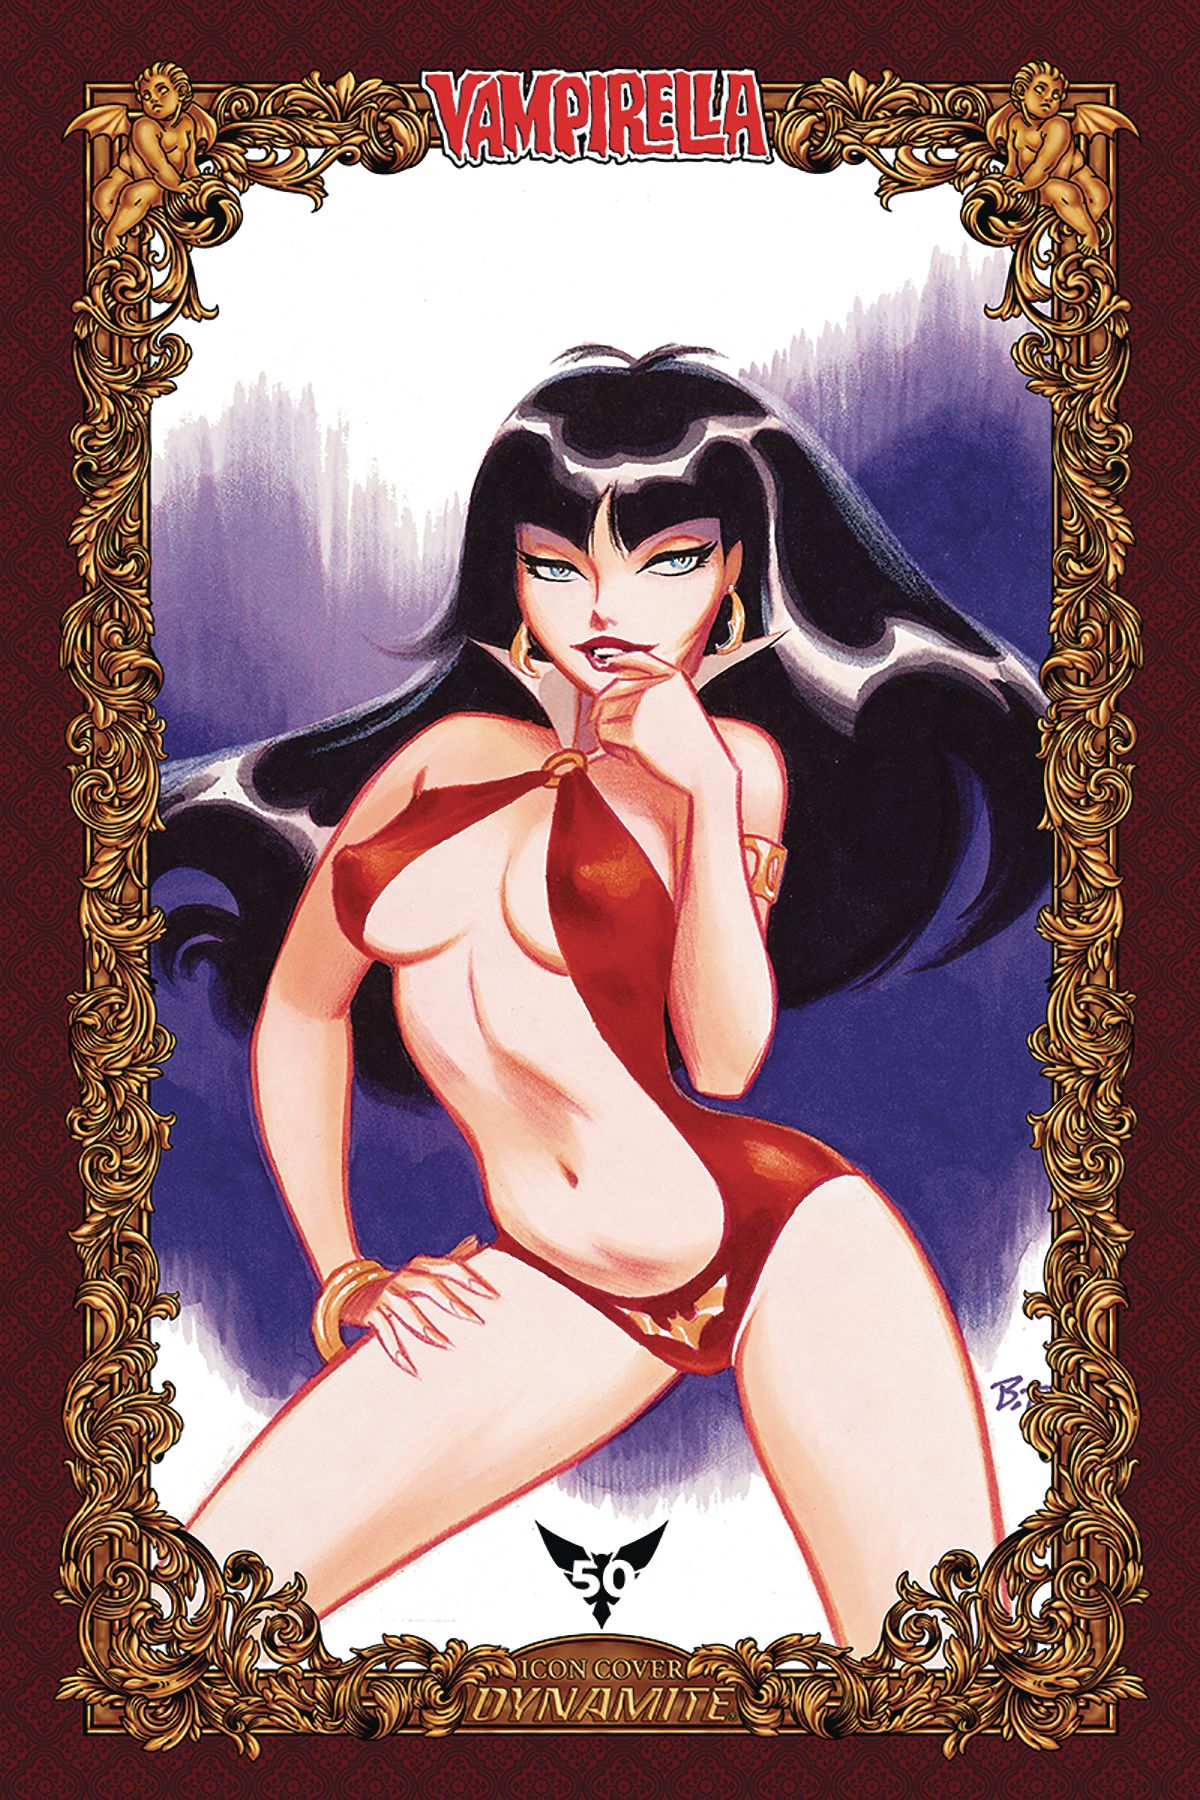 VAMPIRELLA #9 75 COPY TIMM ICON INCV